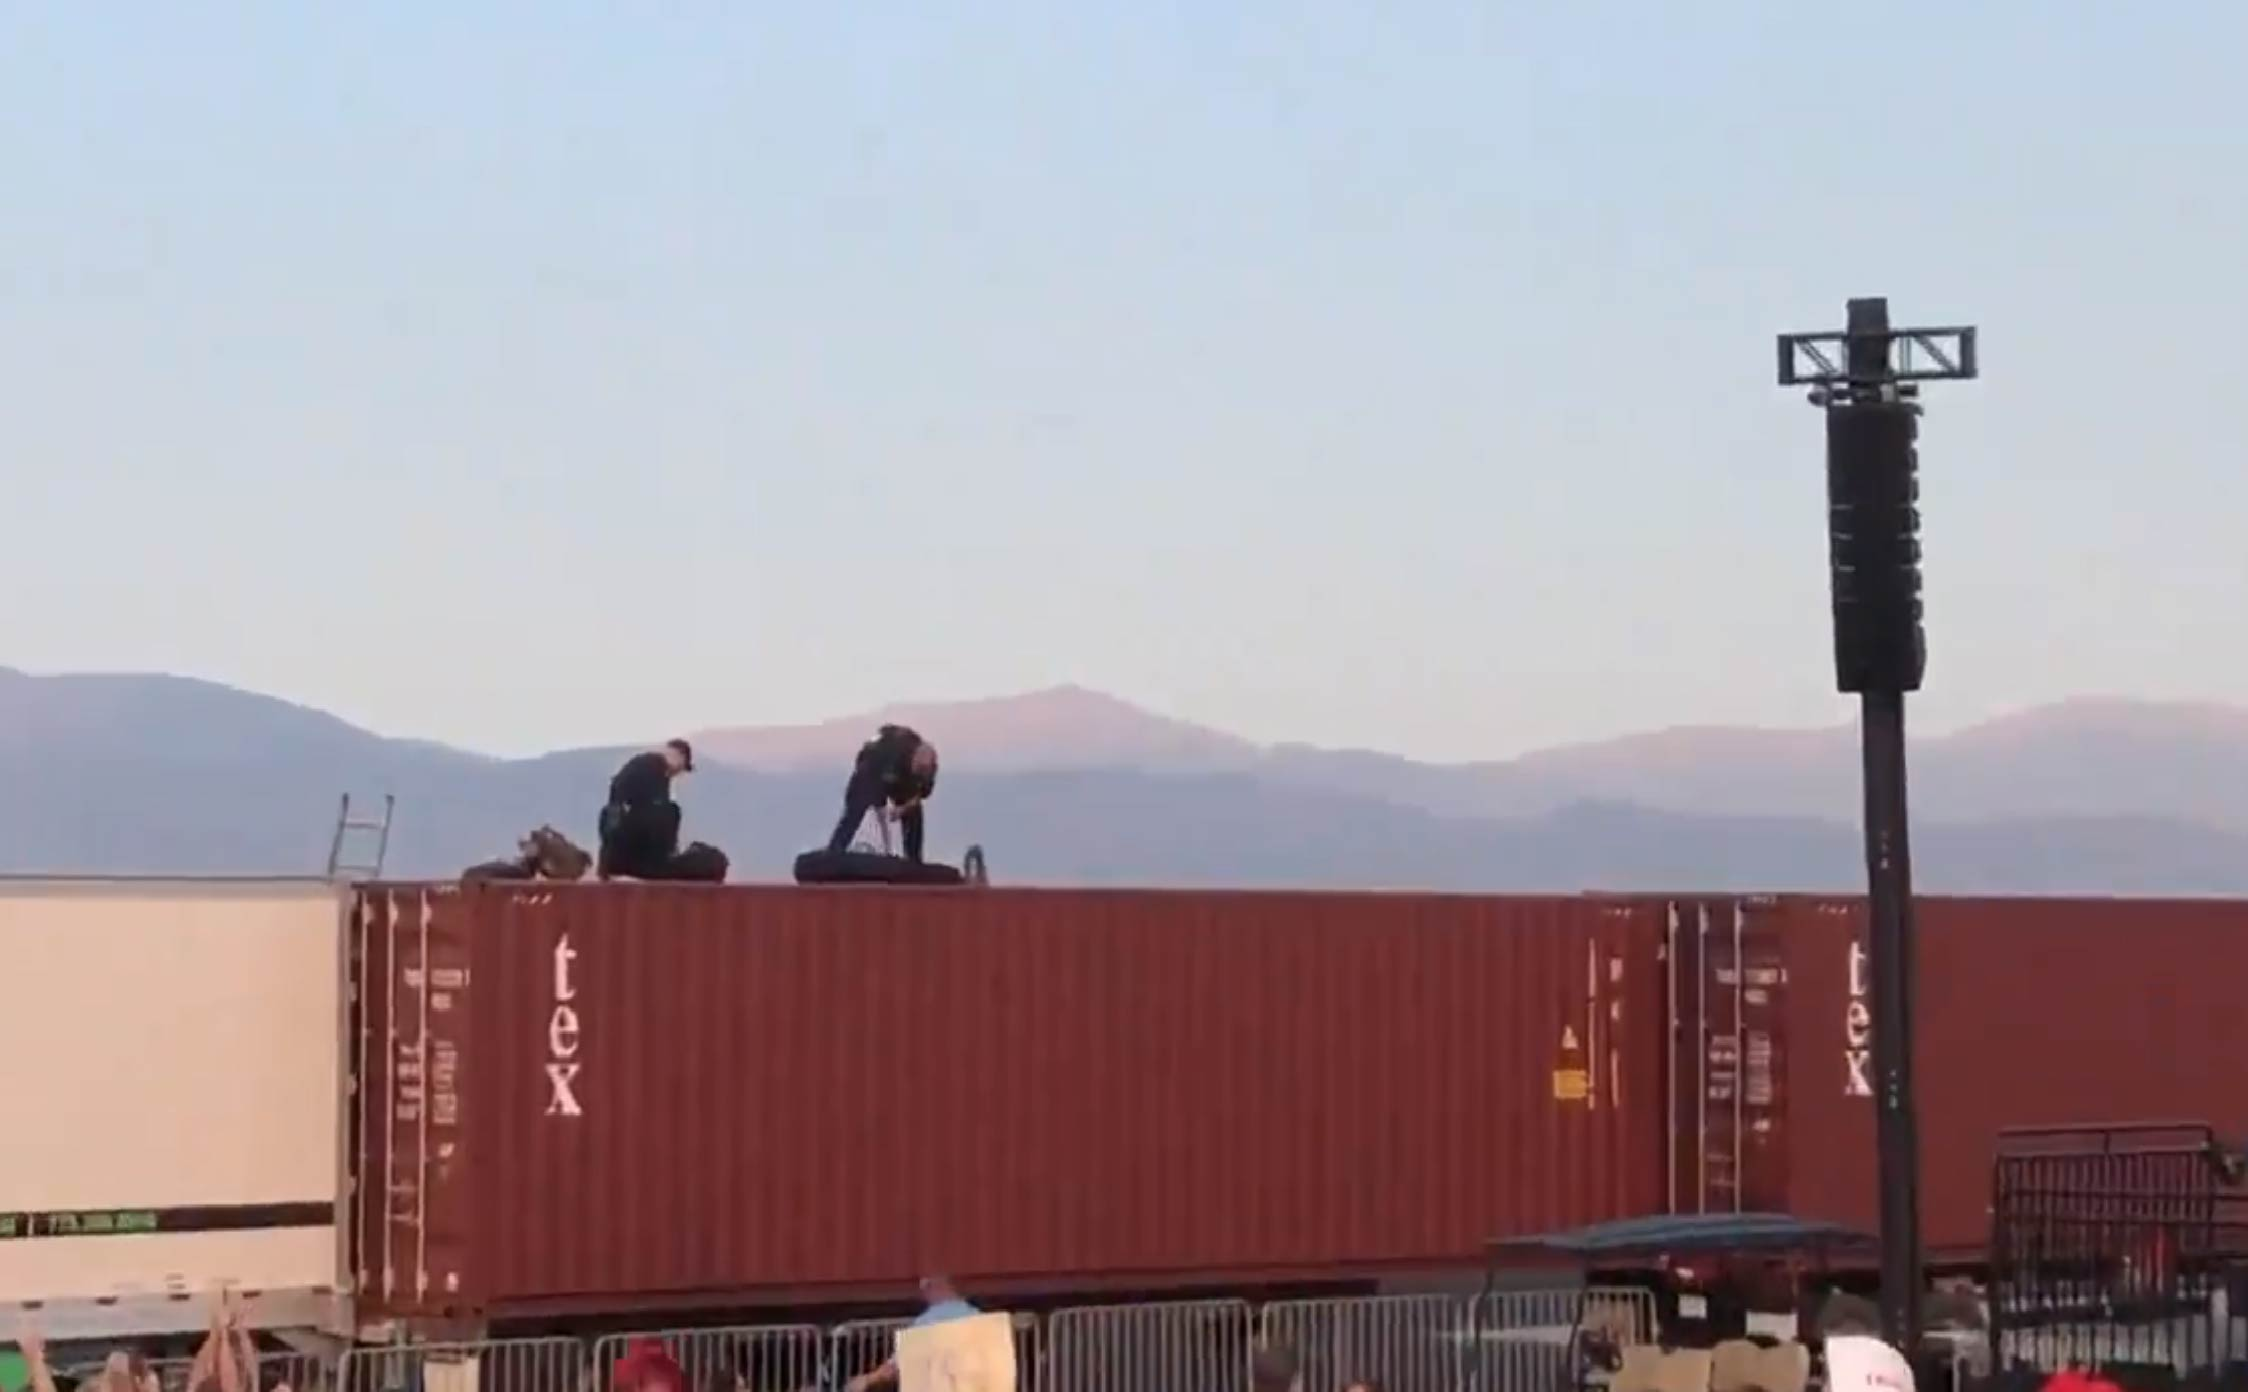 [VIDEO] Crowd Erupts as Snipers Take Their Position on Semi-Trucks at Trump's Rally